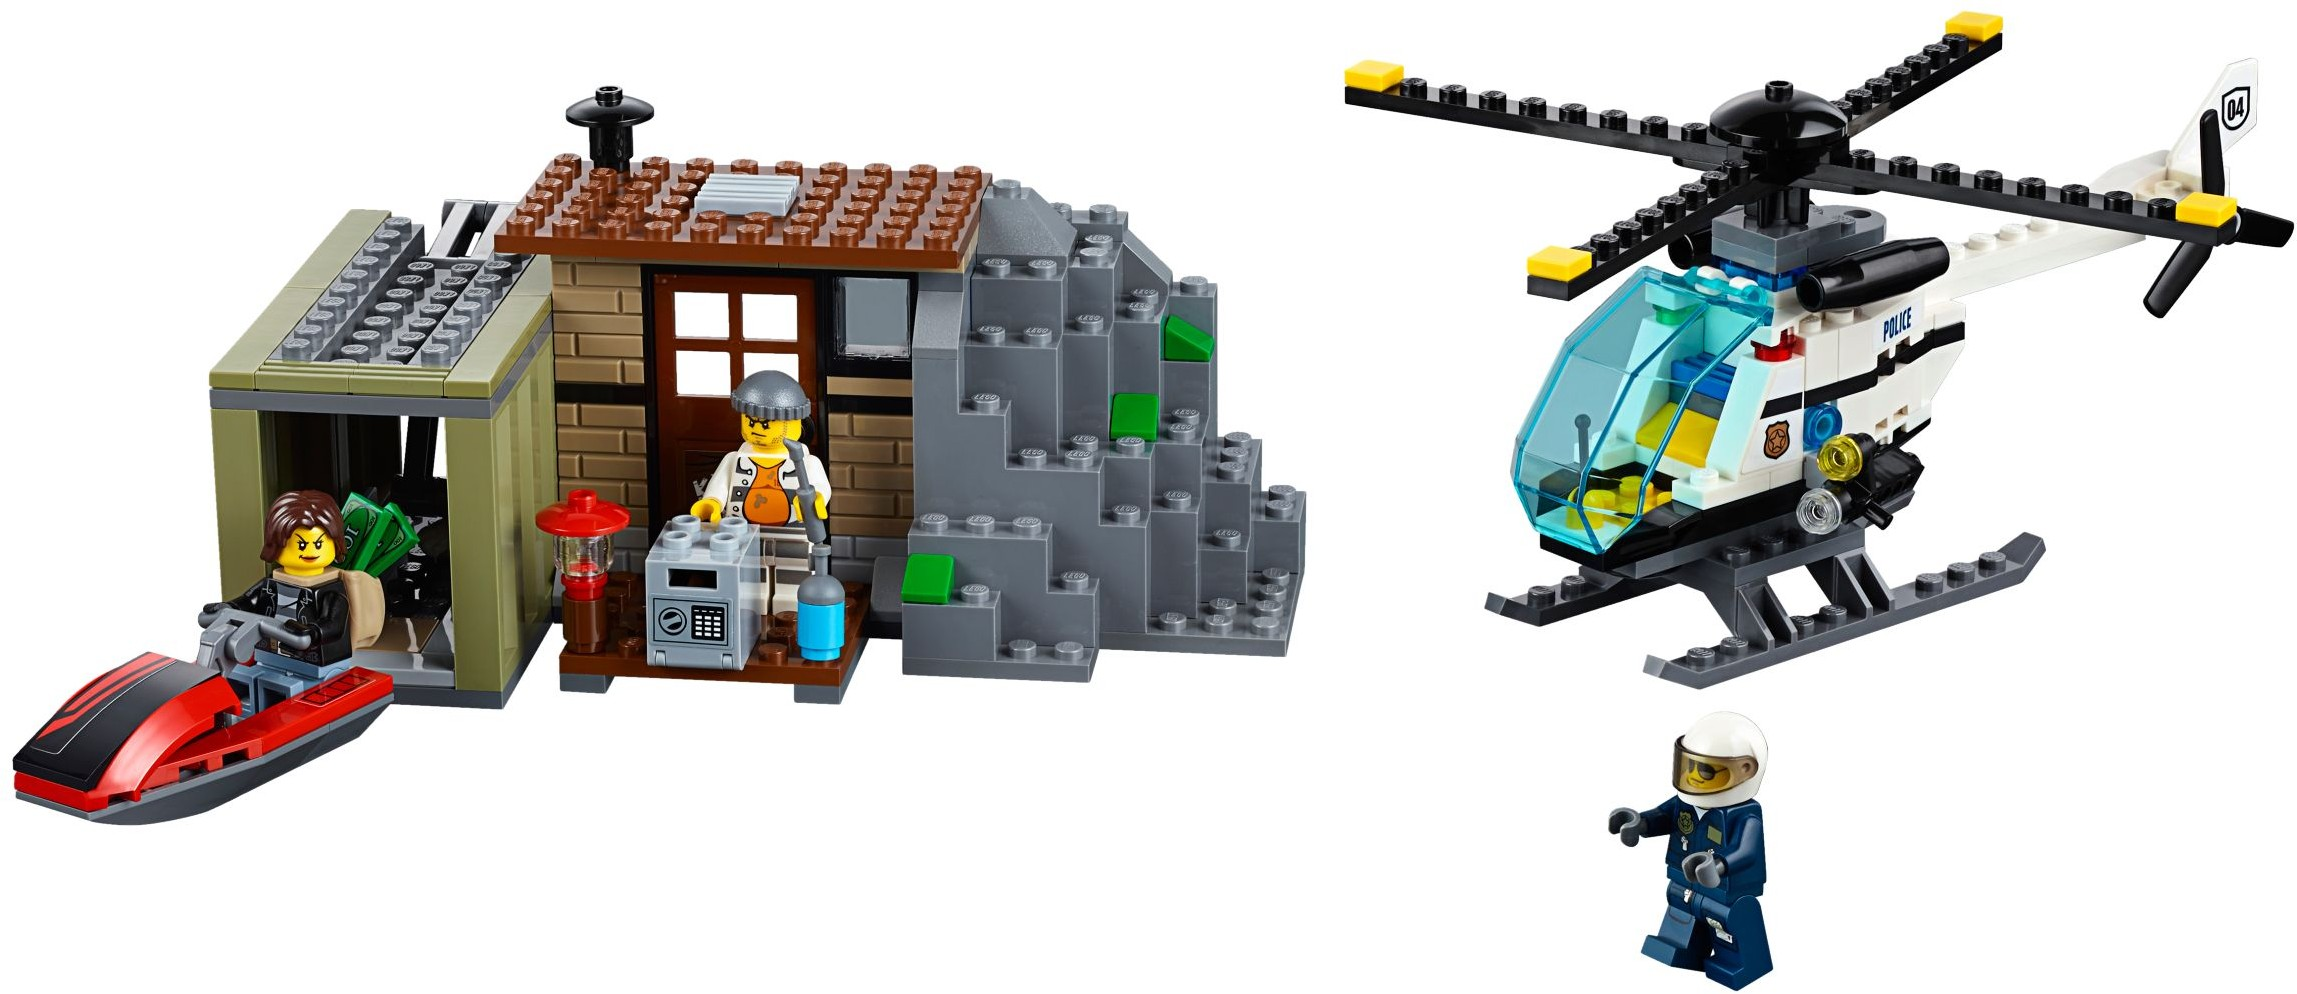 CITY SET 30346 - PRISON ISLAND HELICOPTER BRAND NEW LEGO YEAR 2016